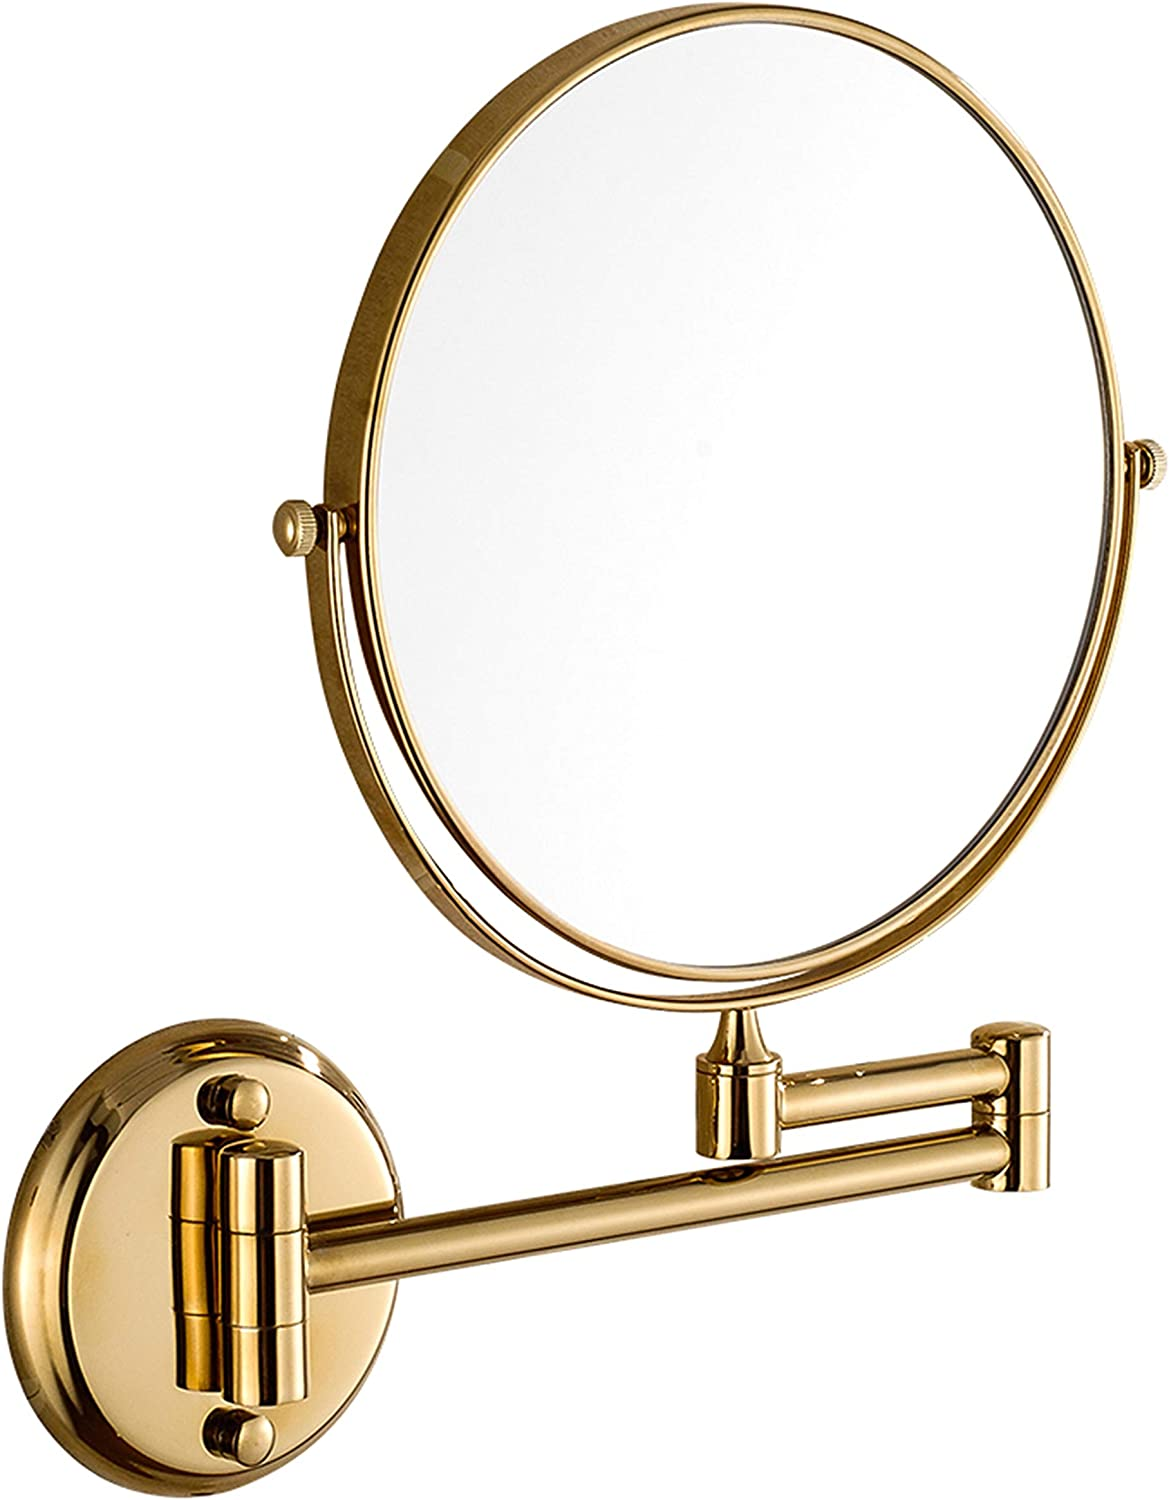 Beauty Mirror Wall Mount Bathroom Metal Makeup Mirror Fold Bathroom Telescopic Mirror Double Sided Amplification Dressing Round Mirror,gold,8inch